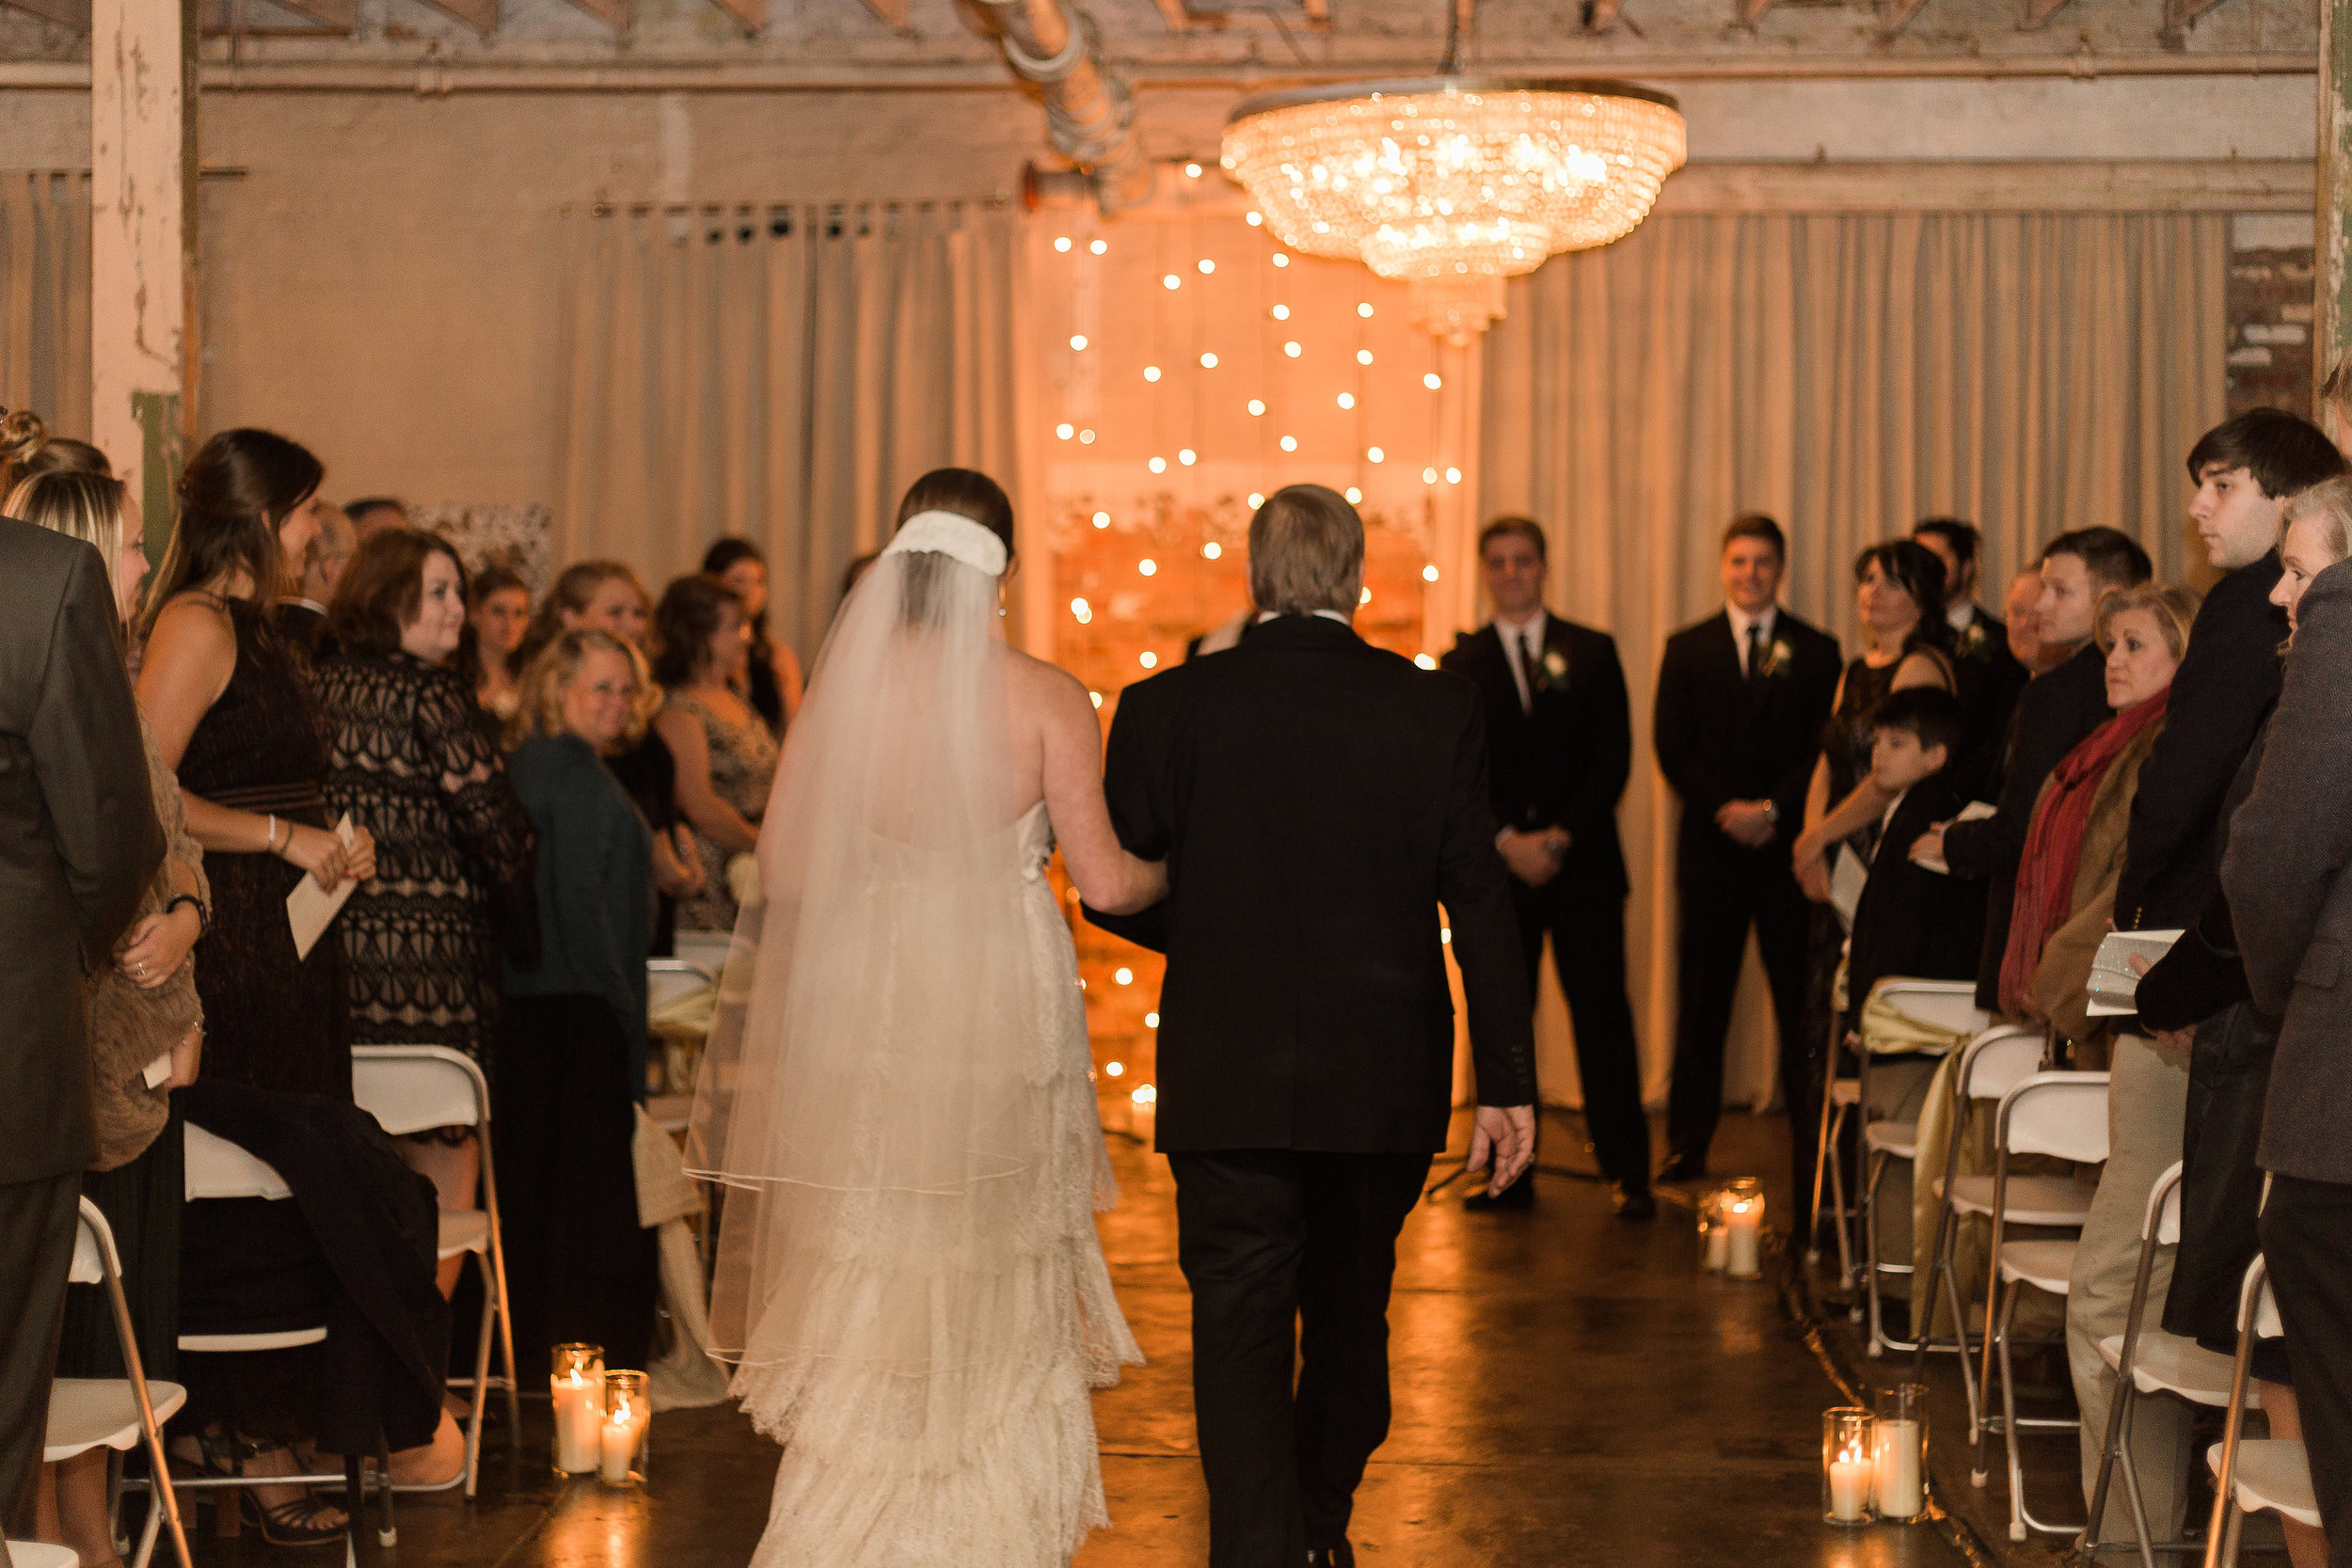 the bride makes her entrance down a romantic aisle styled with candles and lighting on the exposed brick backdrop.